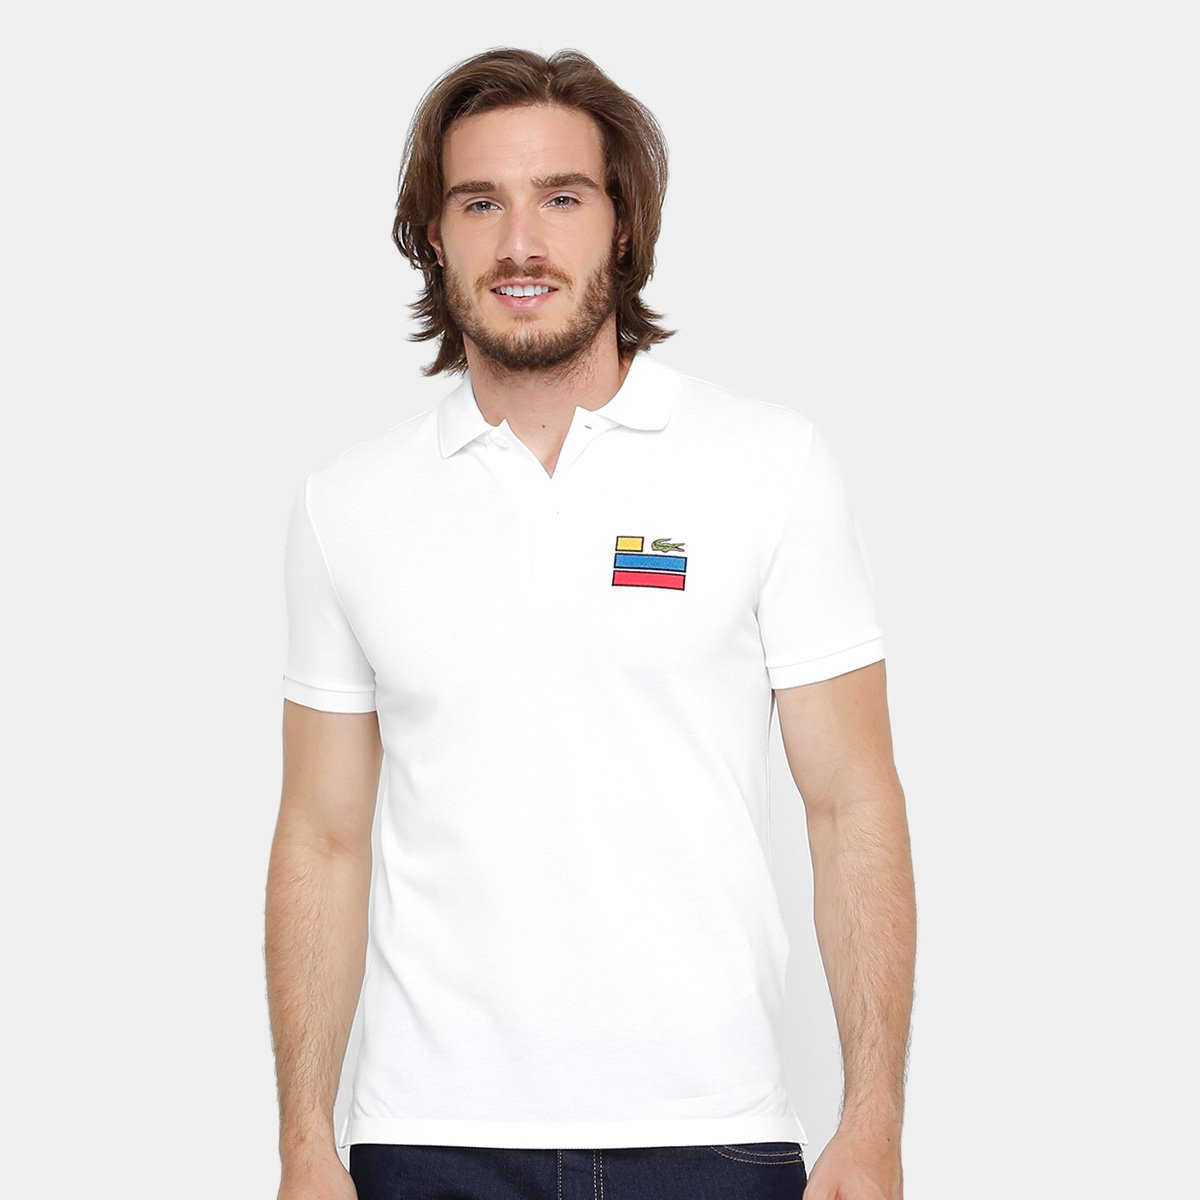 00df48284104e Camisa Polo Lacoste Slim Fit Fancy Masculina